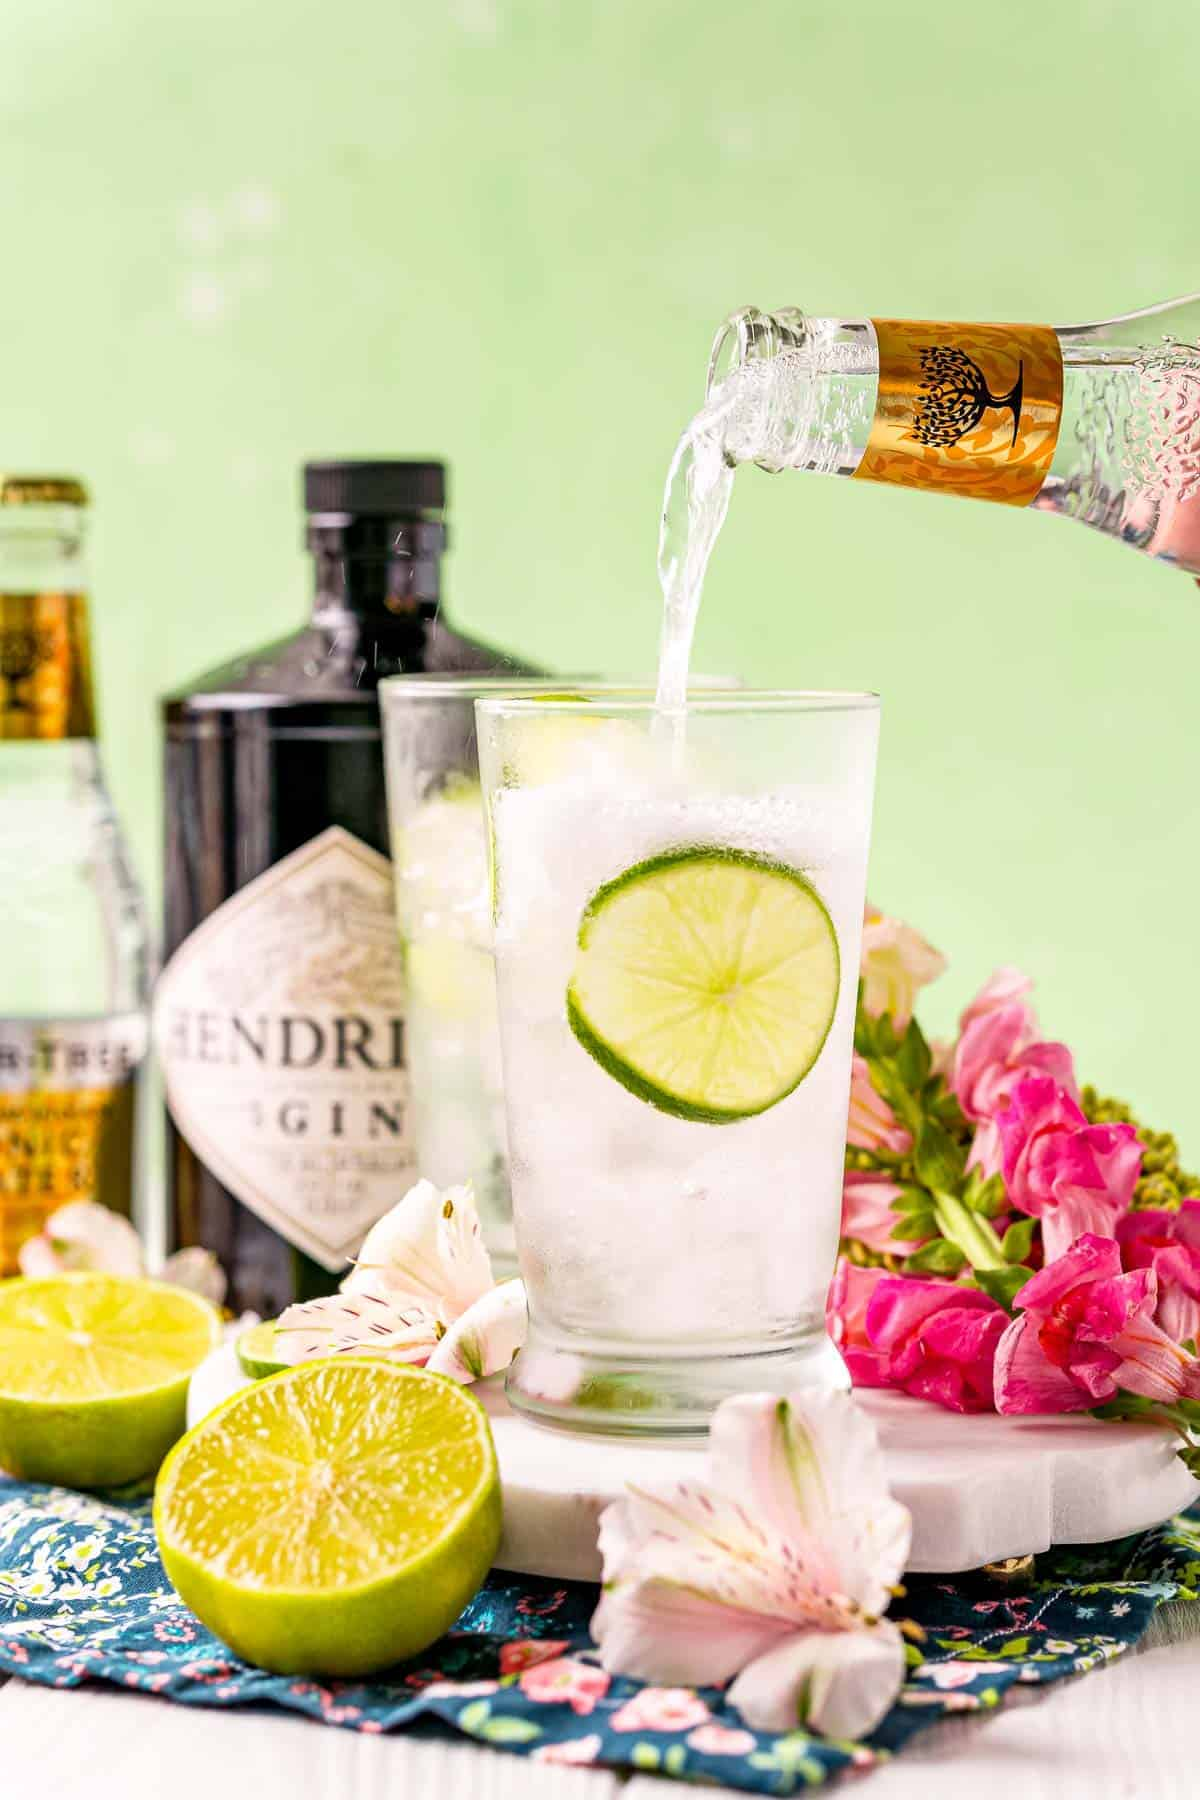 Tonic water being poured into a glass with ice and lime.